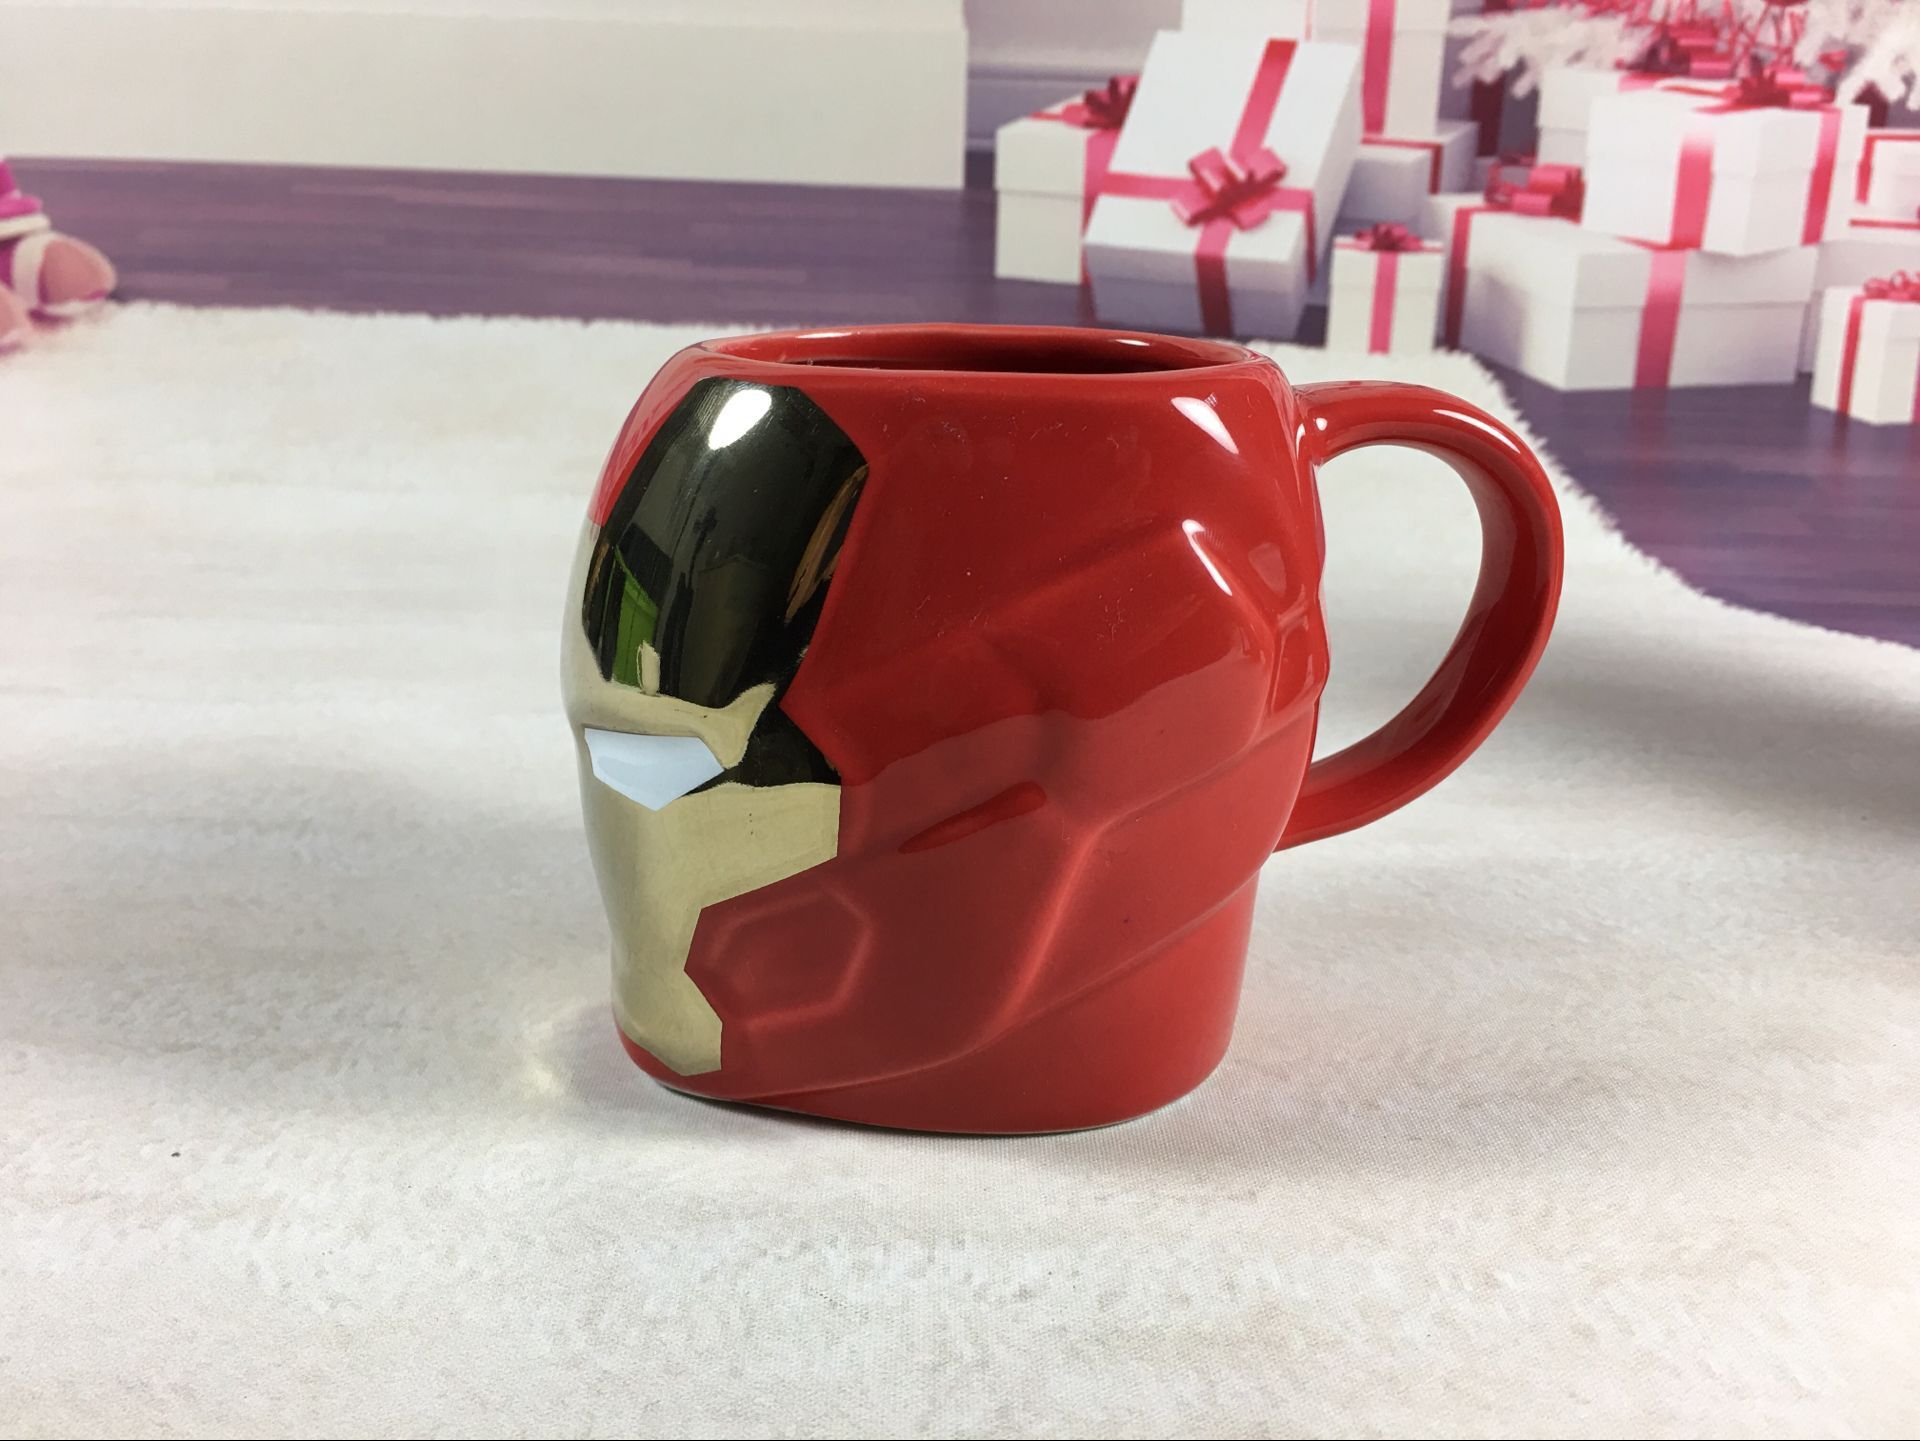 Iron Man Mug_3_Wrap Smile.jpg